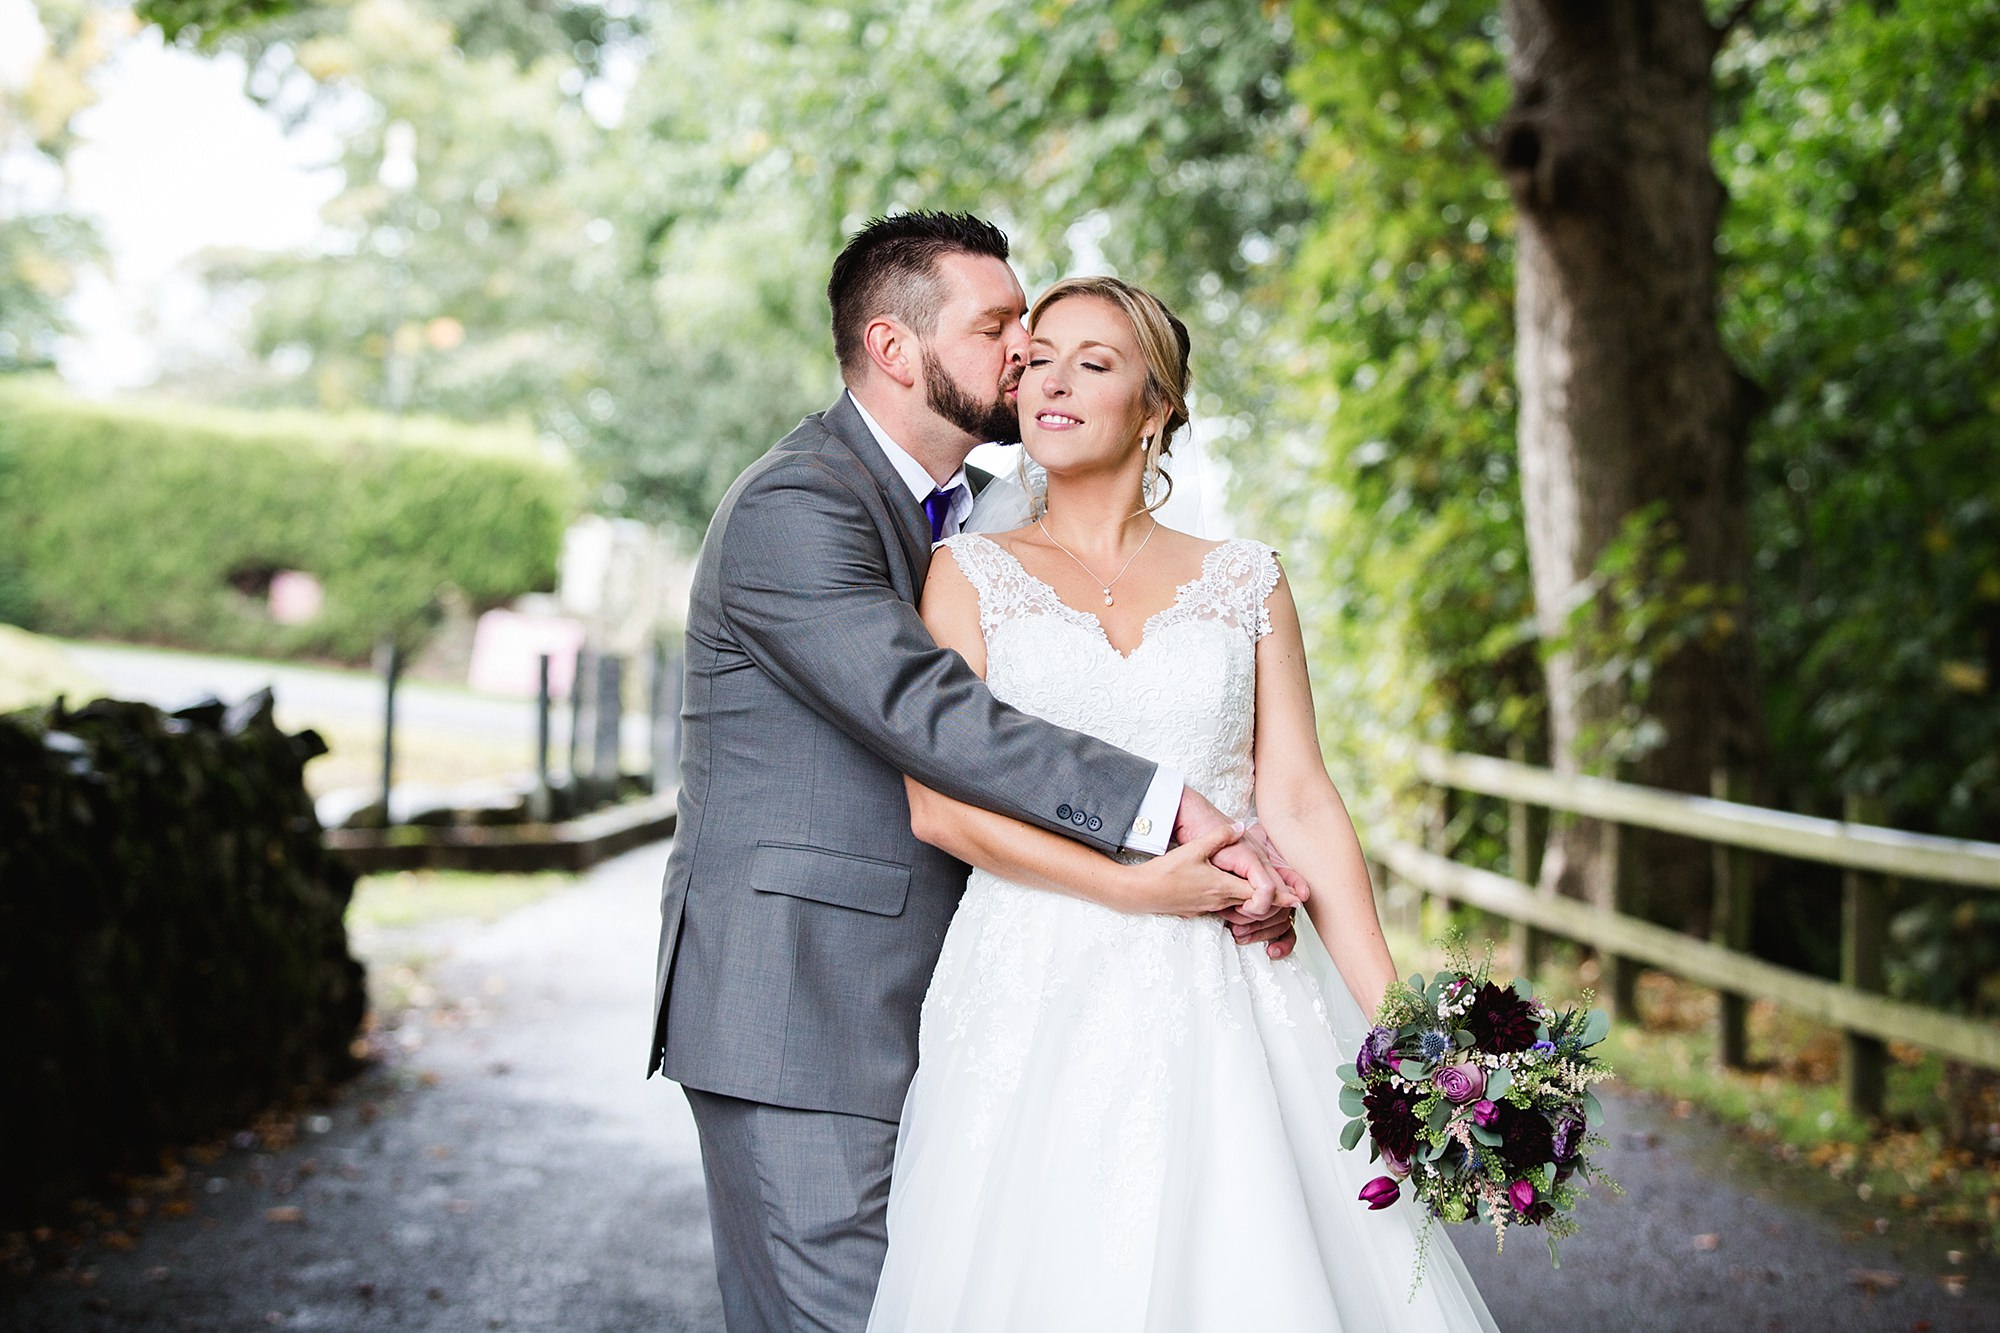 A fun wedding at Plas Isaf portrait of bride and groom